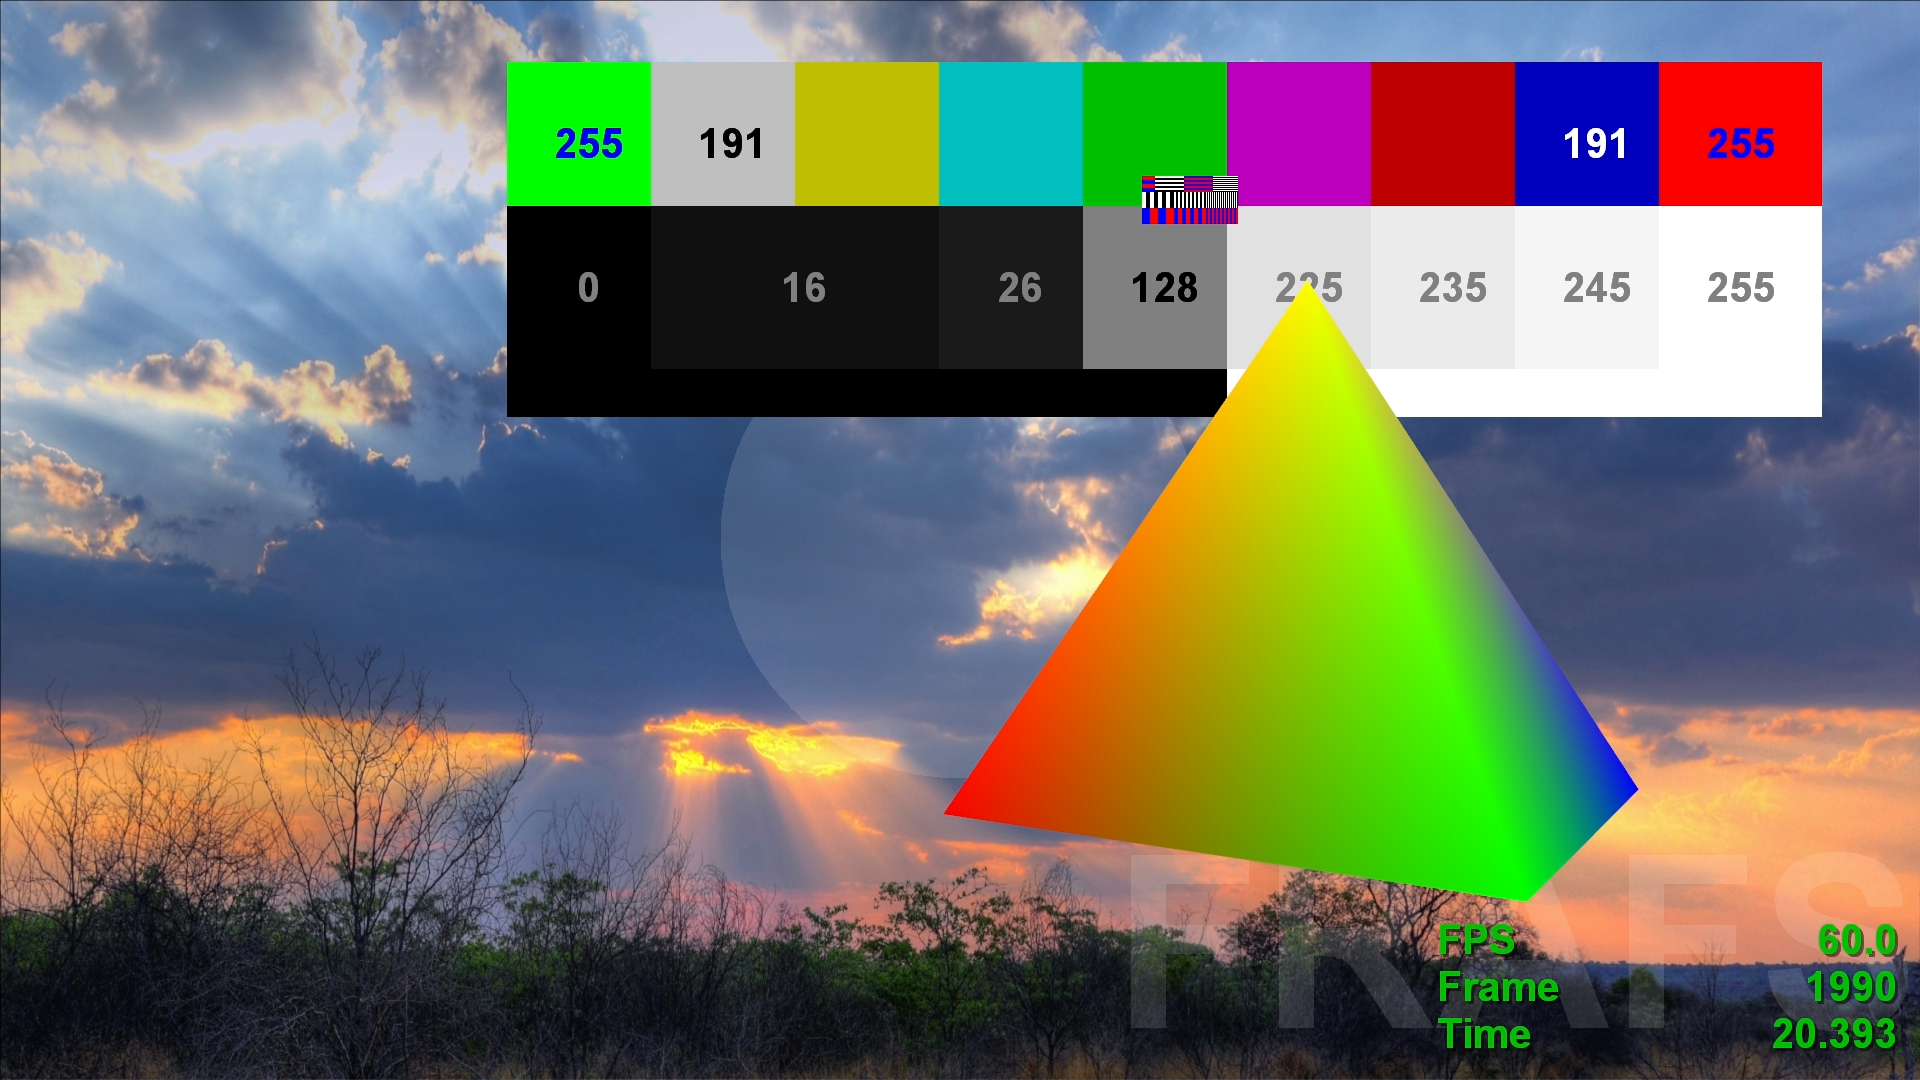 Online yuv color picker - But Colors Are Different In Yuv As I Said